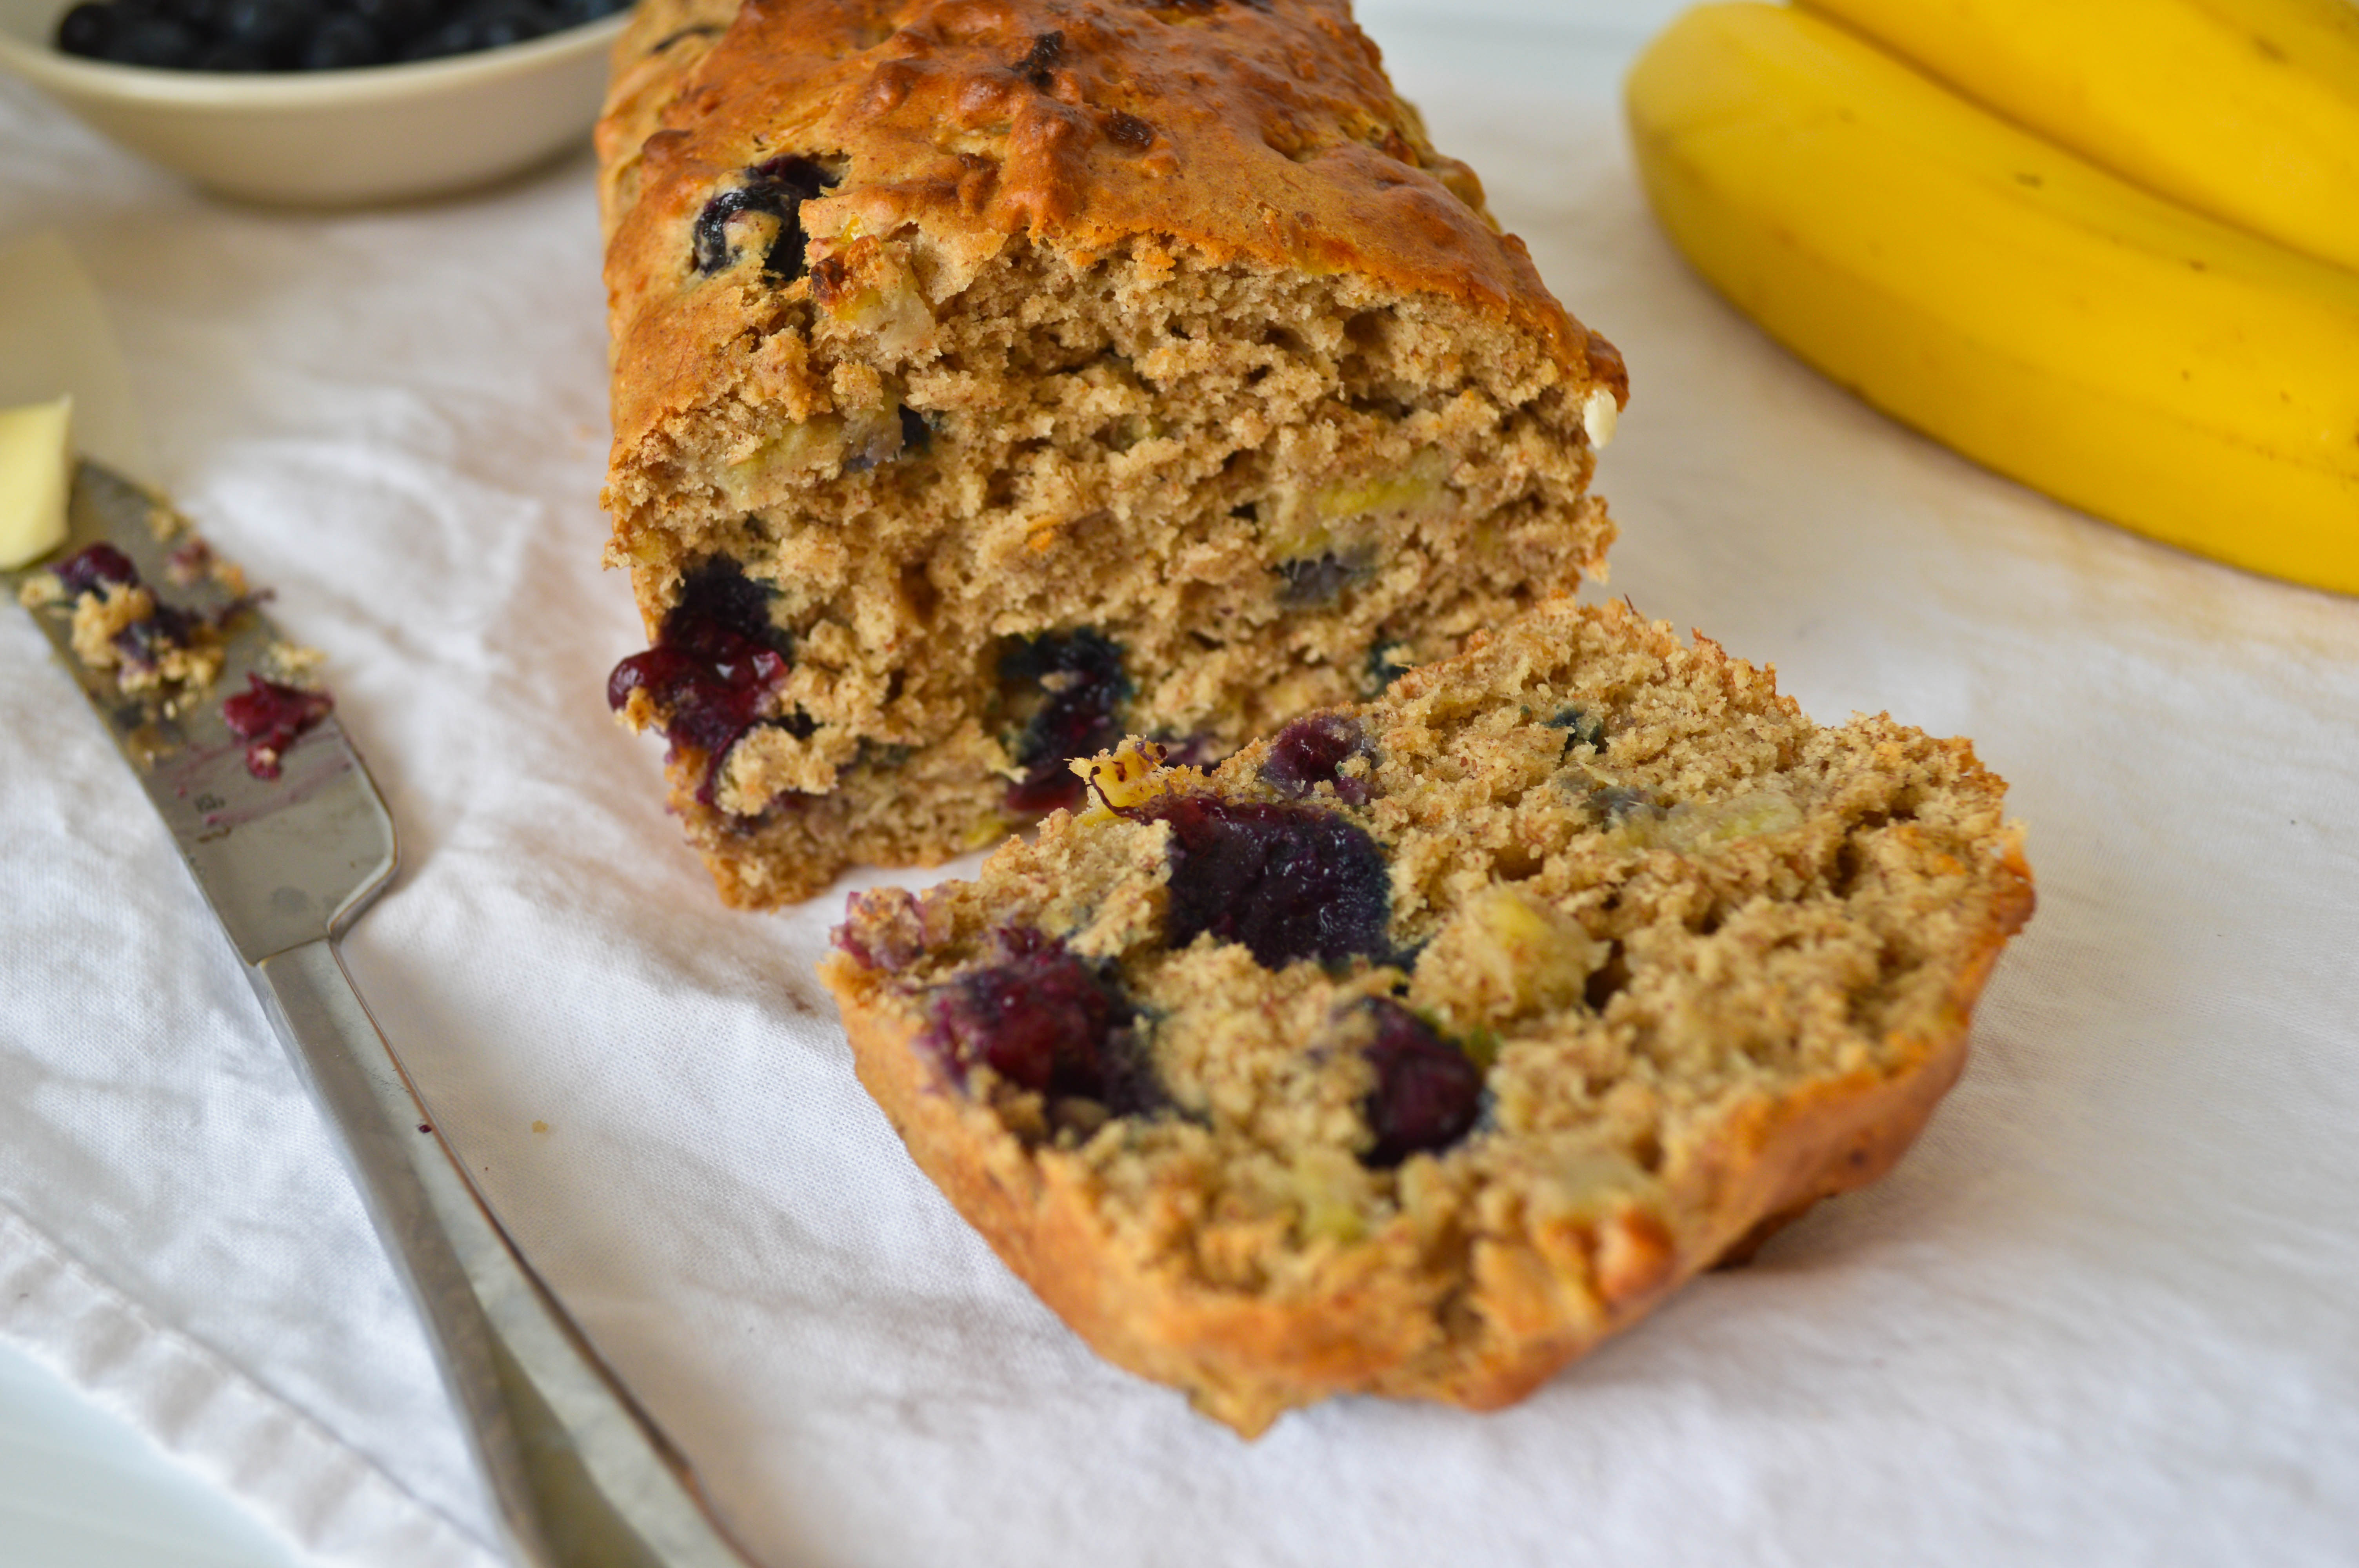 Blueberry and Almond Butter Banana Bread